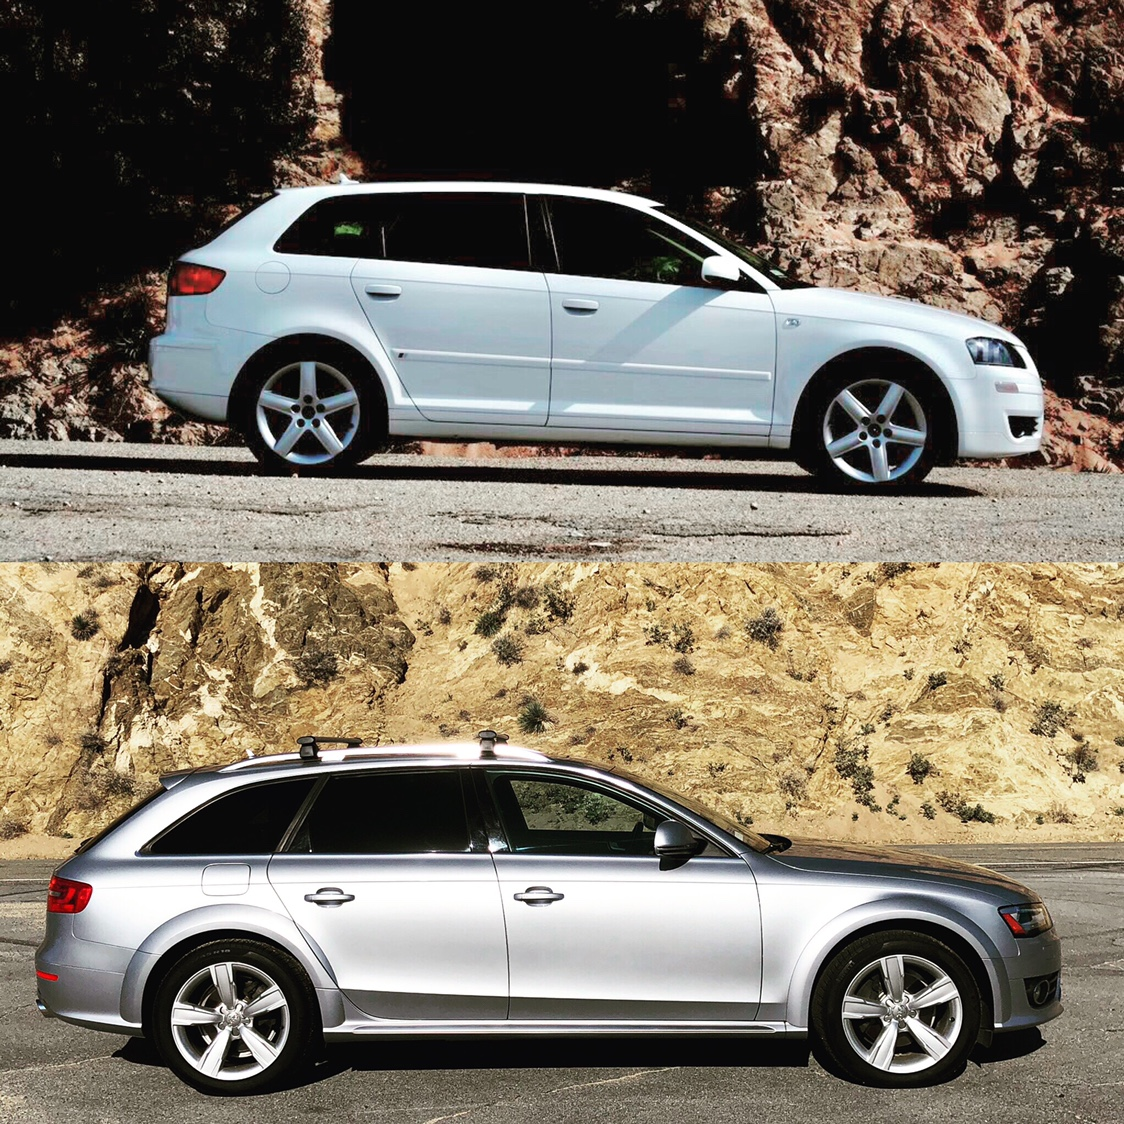 Pre Owned Audis: How Durable Are Audi's?